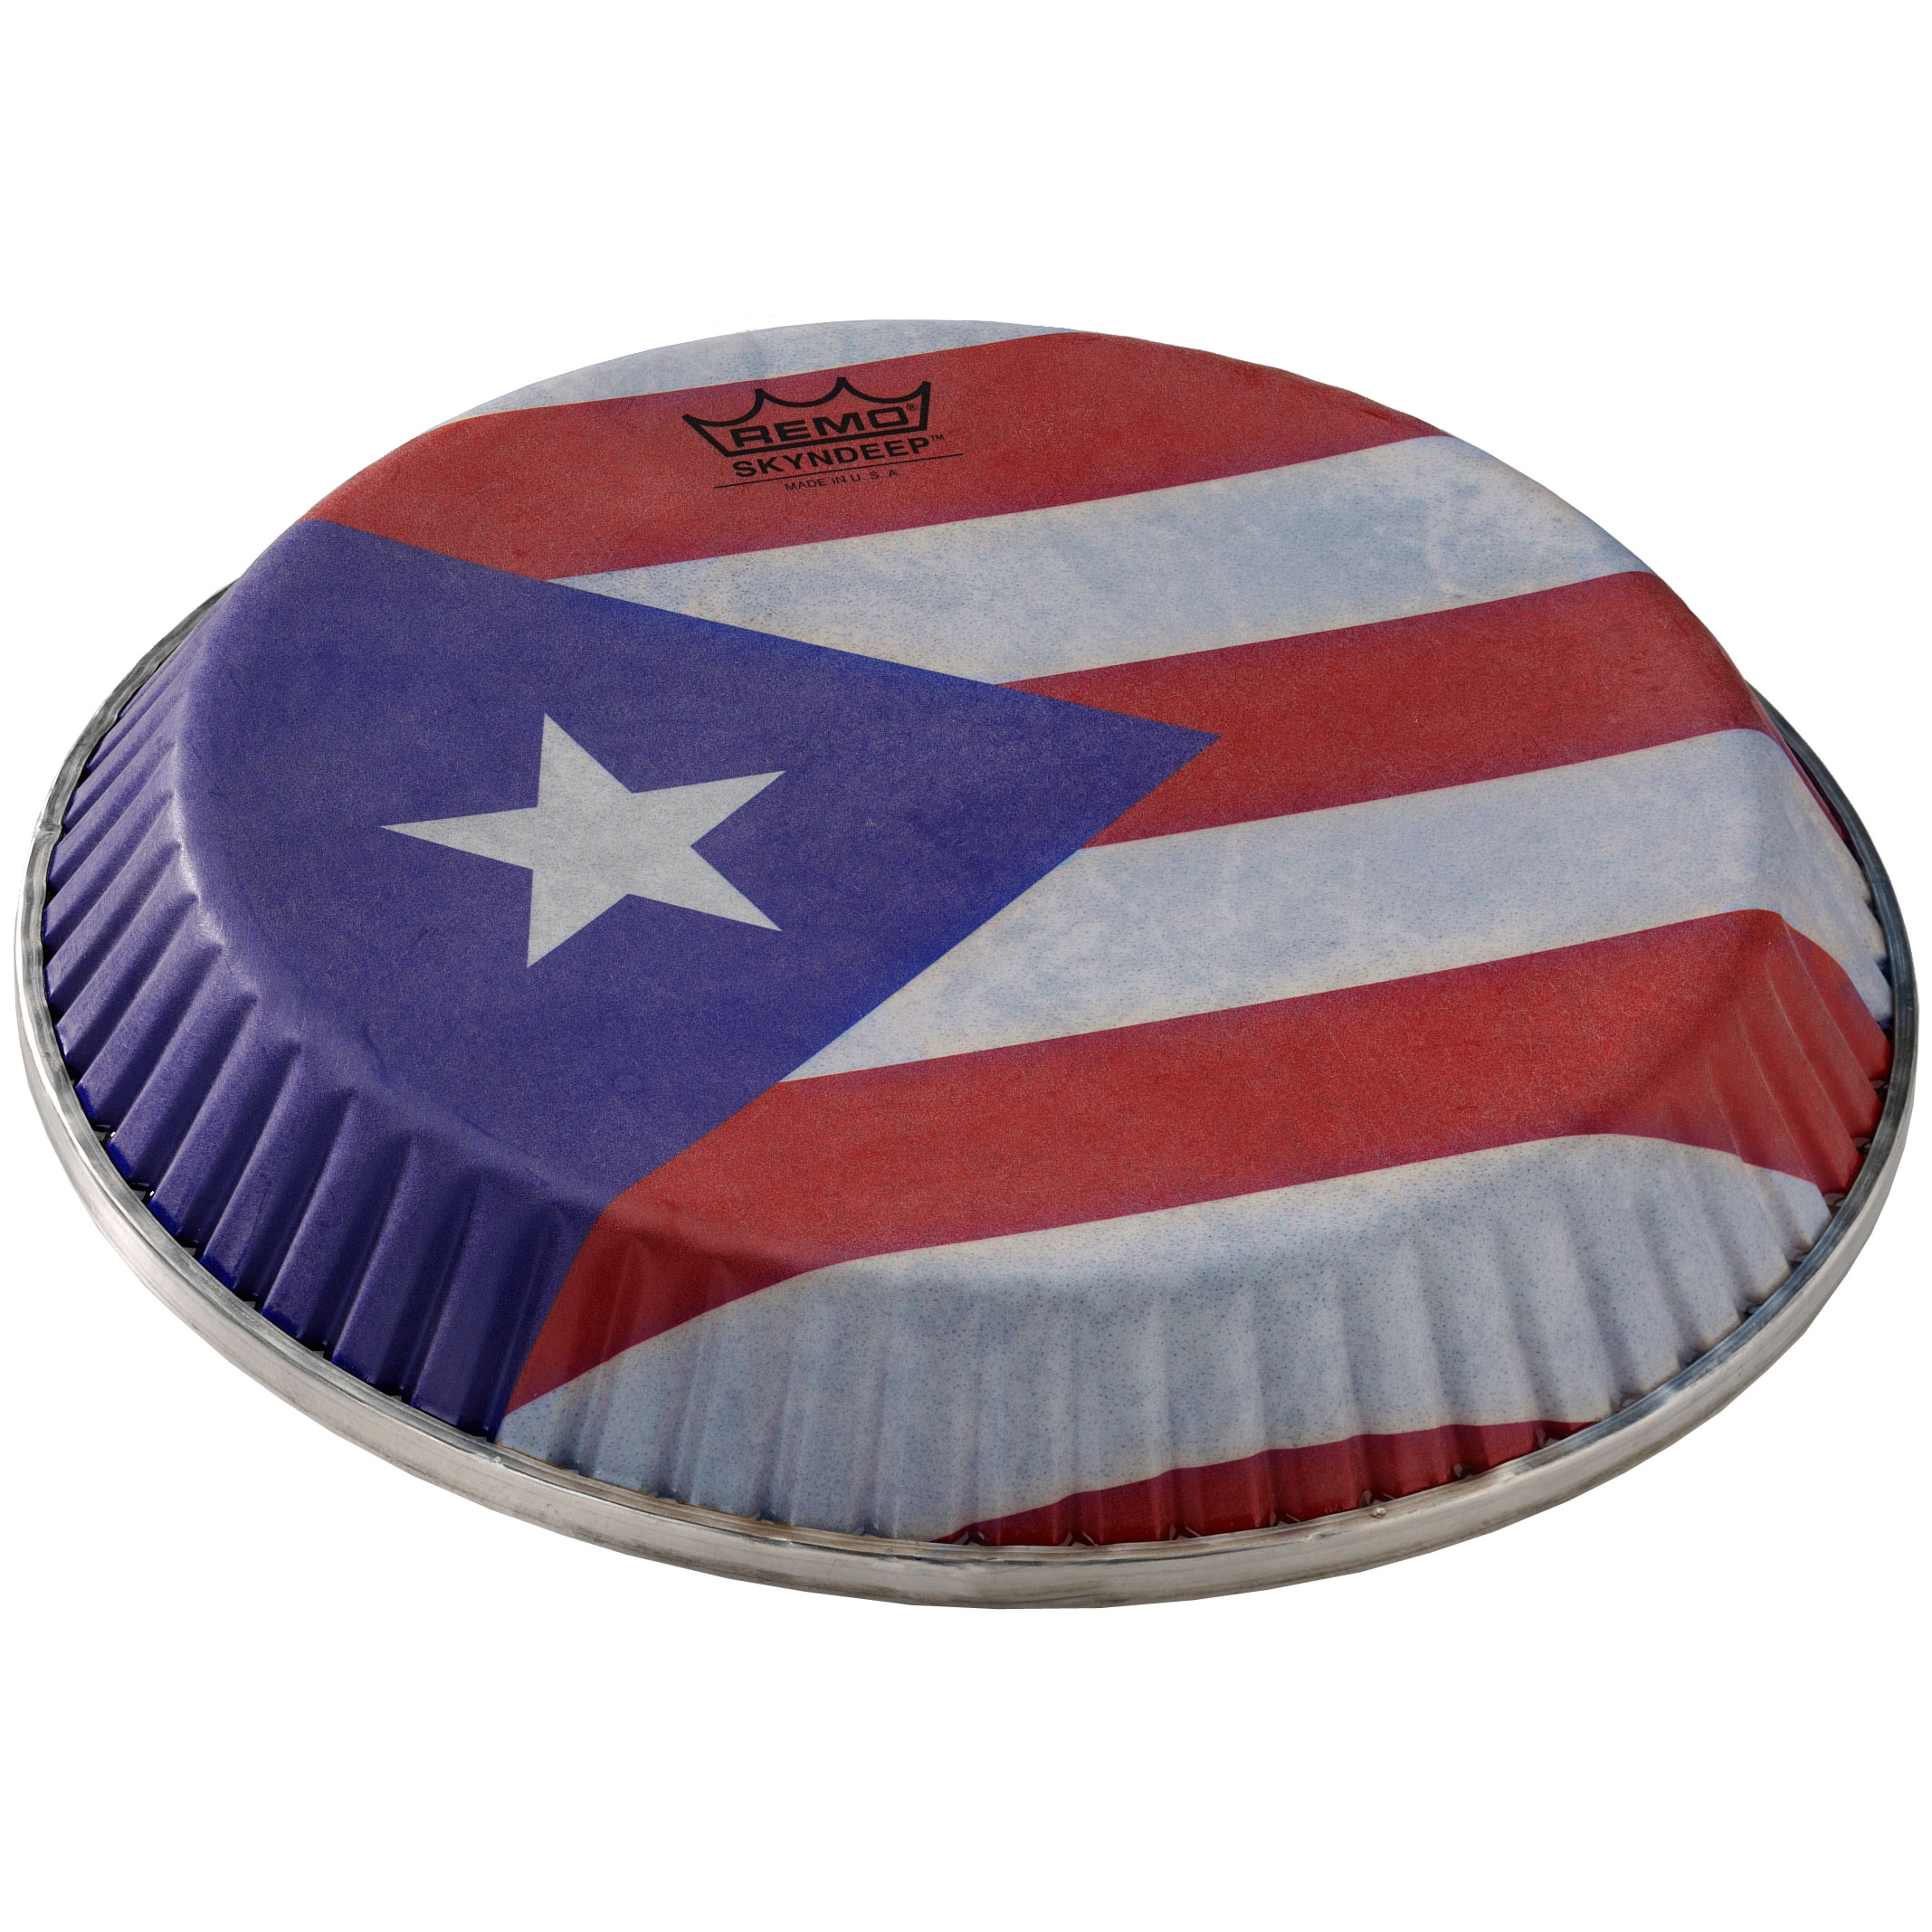 """Remo 11.75"""" Symmetry Skyndeep Conga Drum Head (D3 Collar) with Puerto Rican Flag Graphic"""